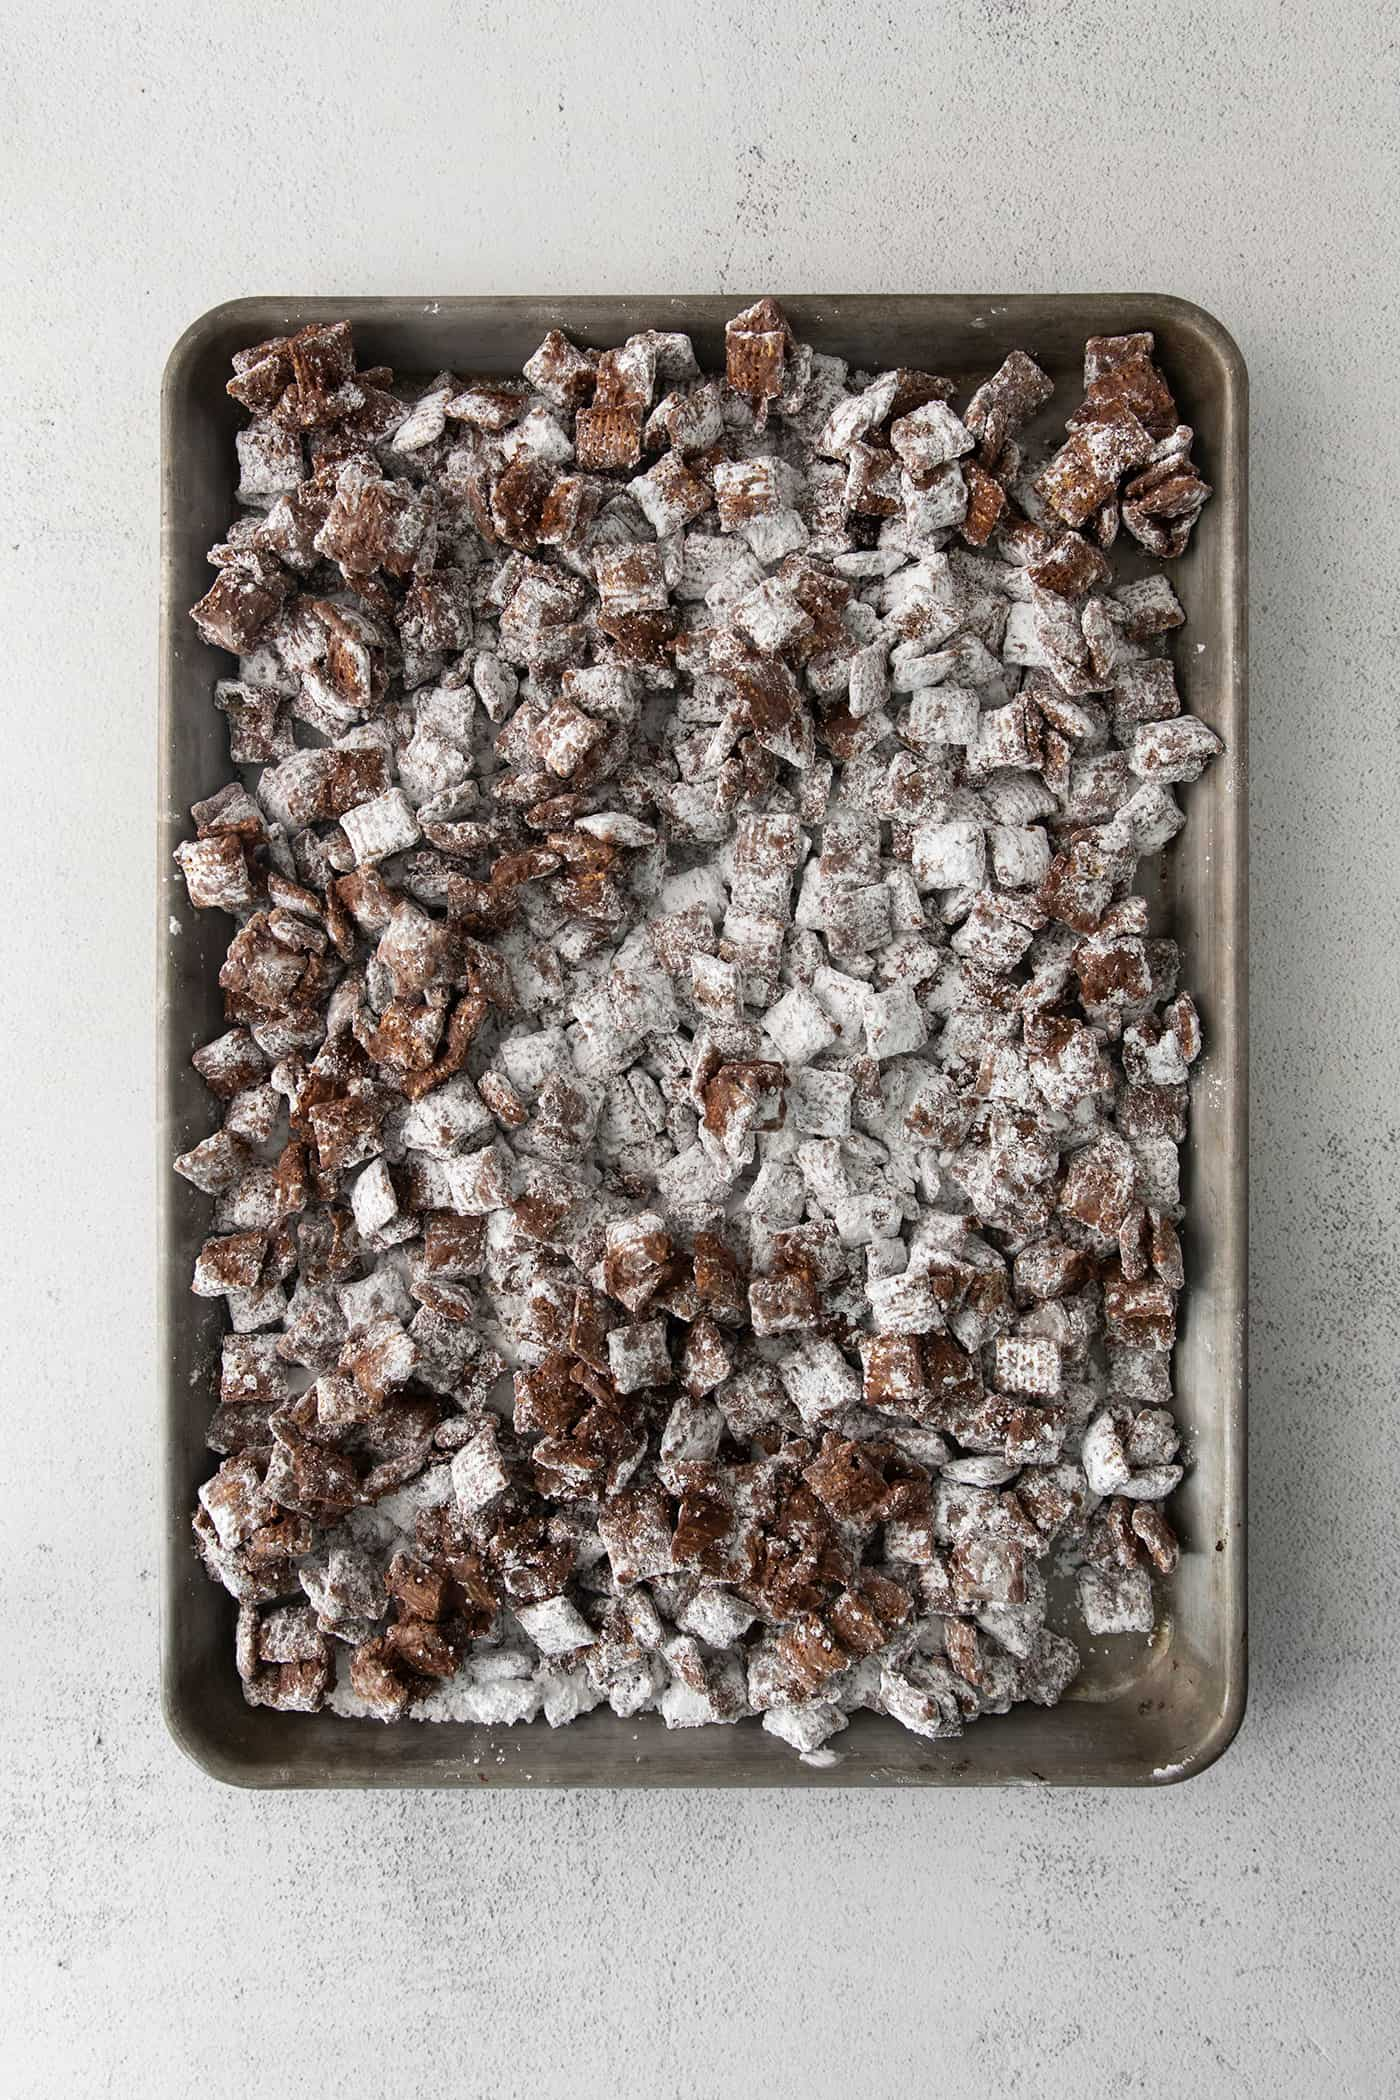 Puppy Chow cooling on a large rimmed pan